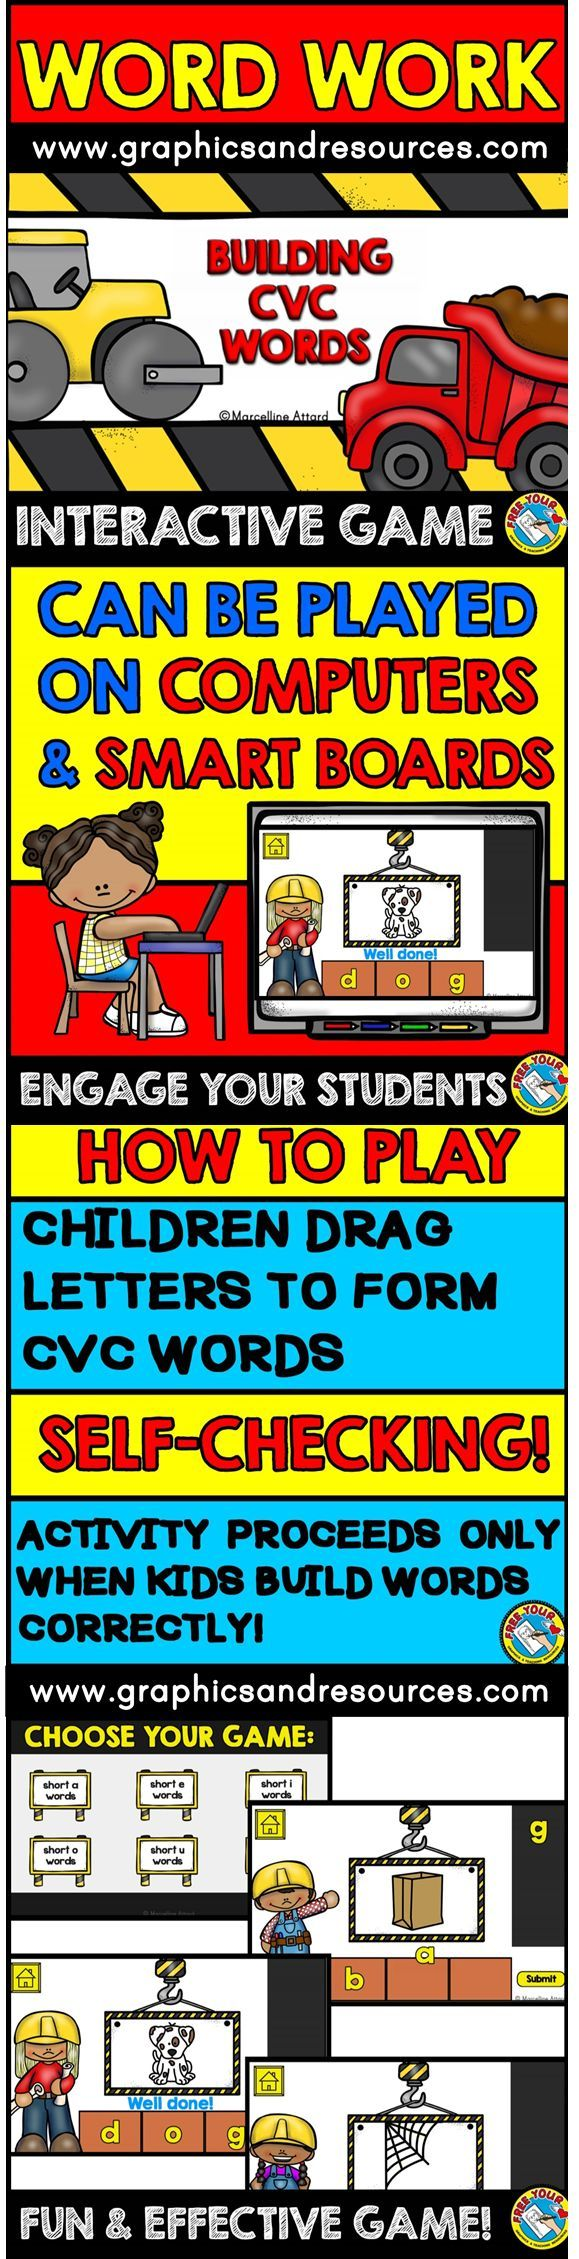 A simple and engaging game for children to practice building cvc words. This game is designed to be used on a computer or interactive whiteboard. Children drag letters onto the bricks to form the word for each cvc picture. Then they click on 'Submit' button to check if formed the word correctly.  Click to view resource!